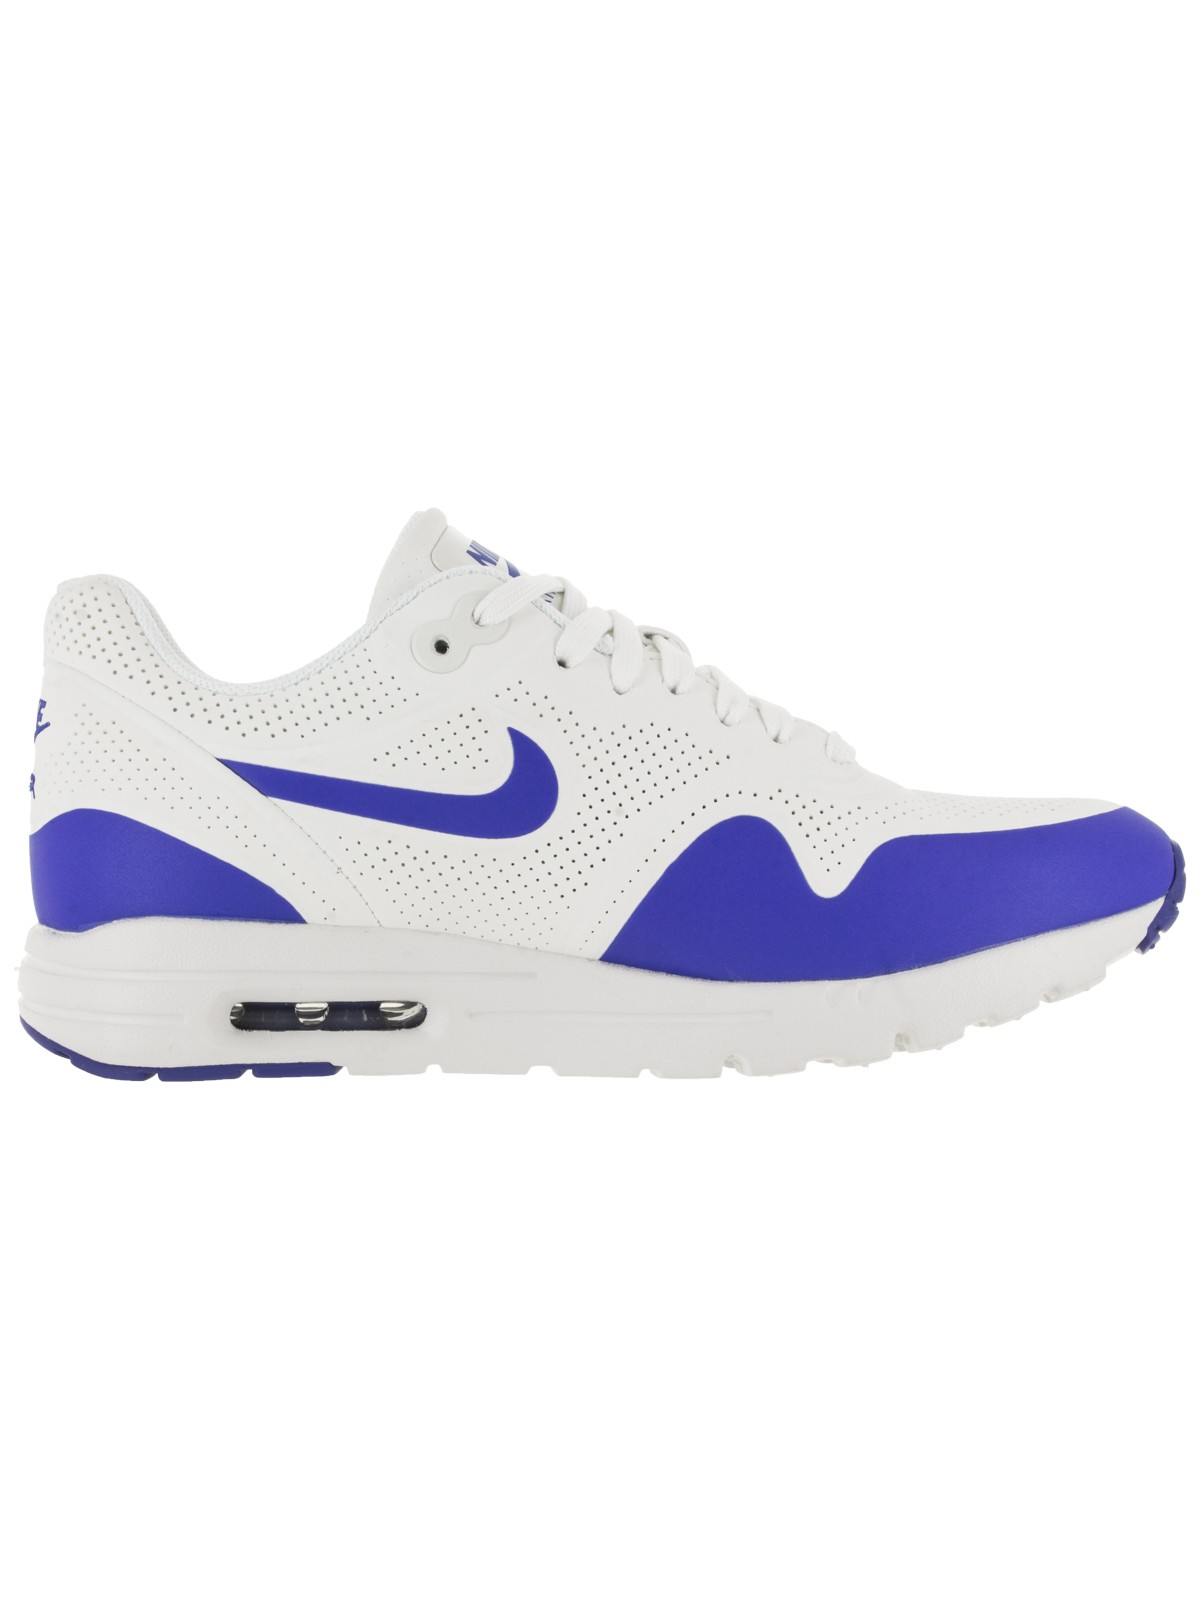 Nike Women's Moire Air Max 1 Ultra Moire Women's Running Shoe:Personality Trend:Man's/Woman's 4dbca6